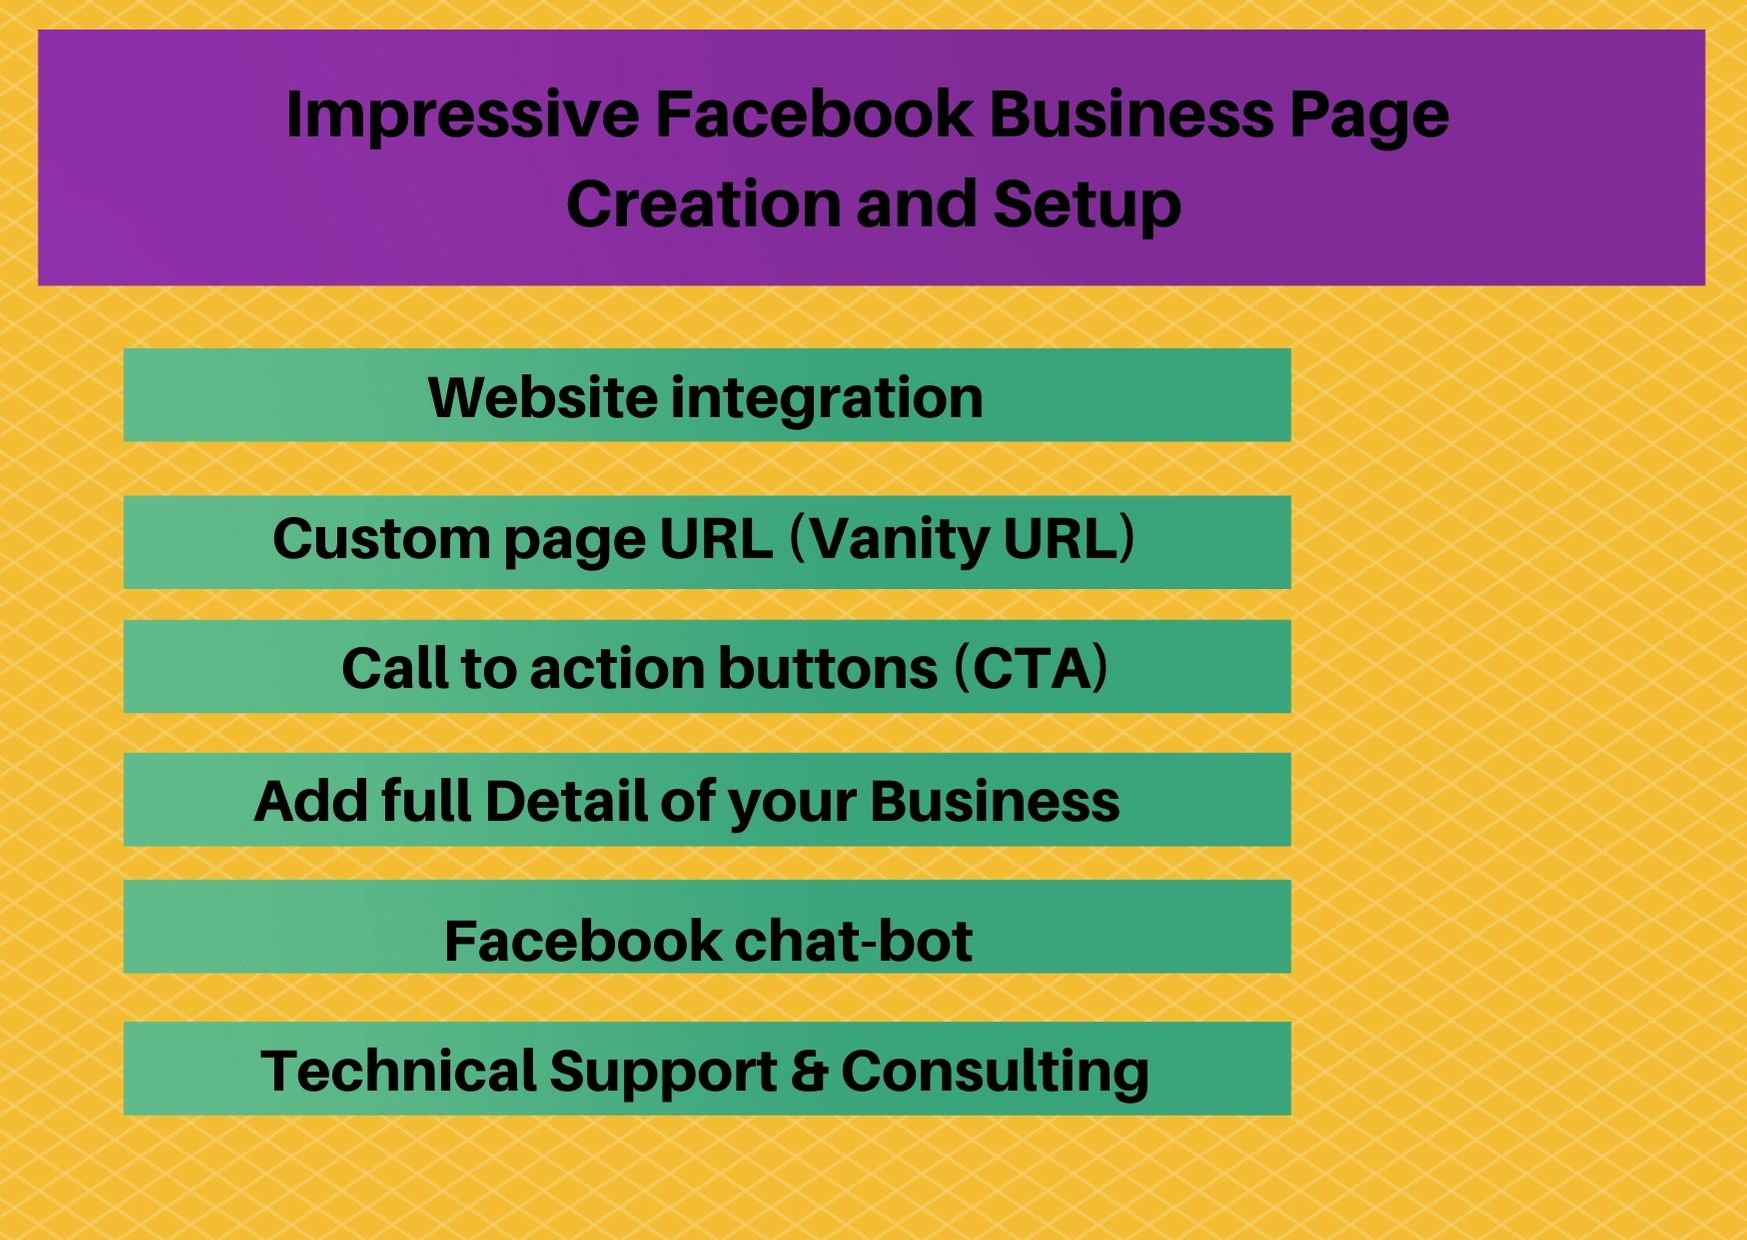 I will create,  manage and optimize an impressive Facebook business page